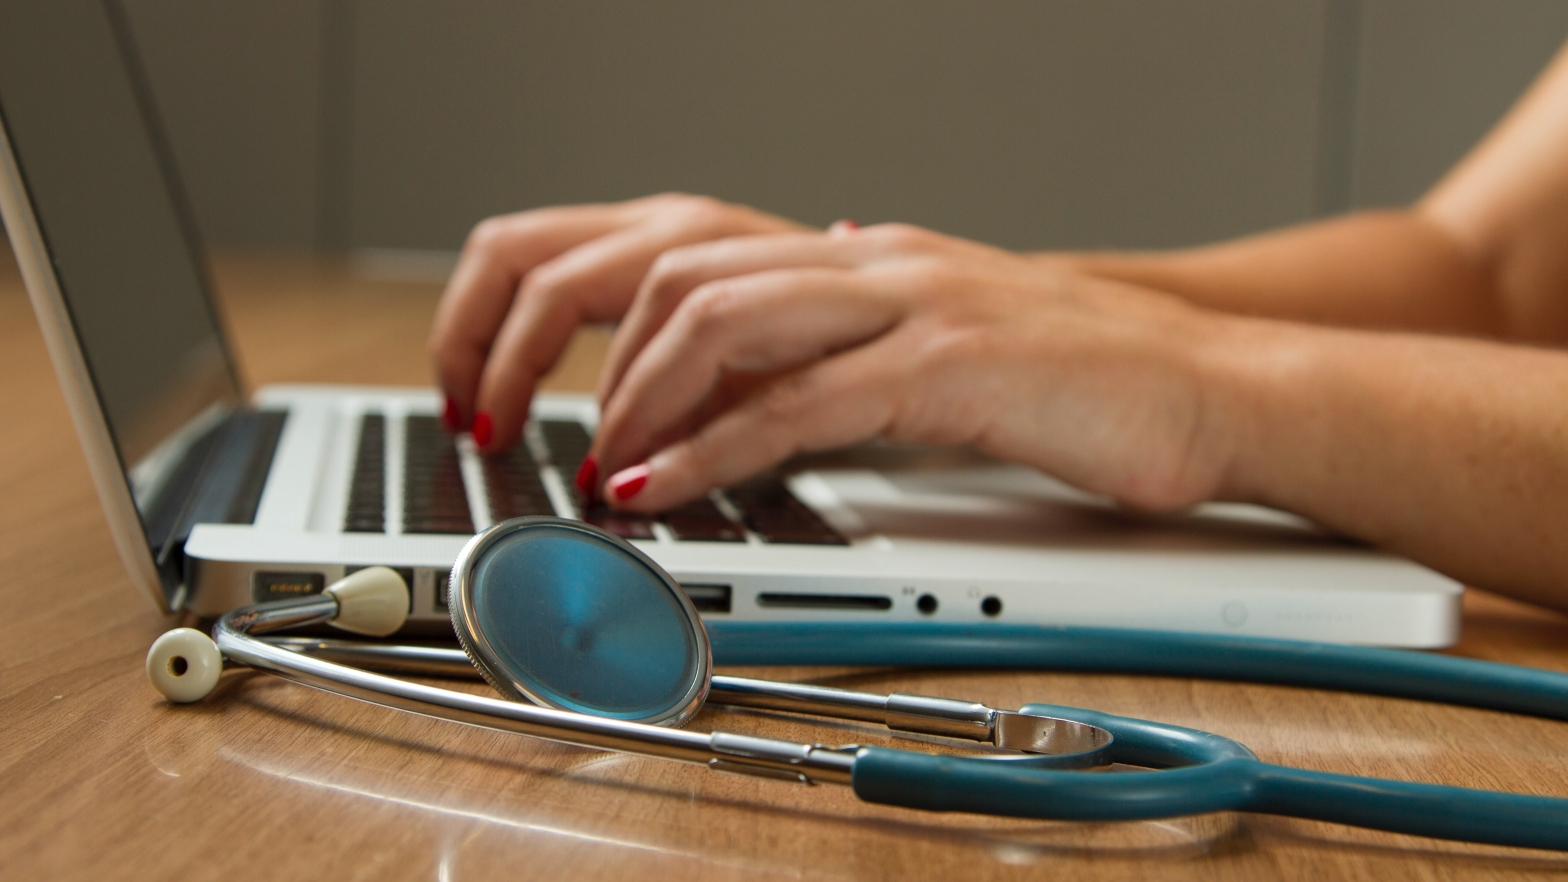 nurse typing on laptop, with stethoscope next to her